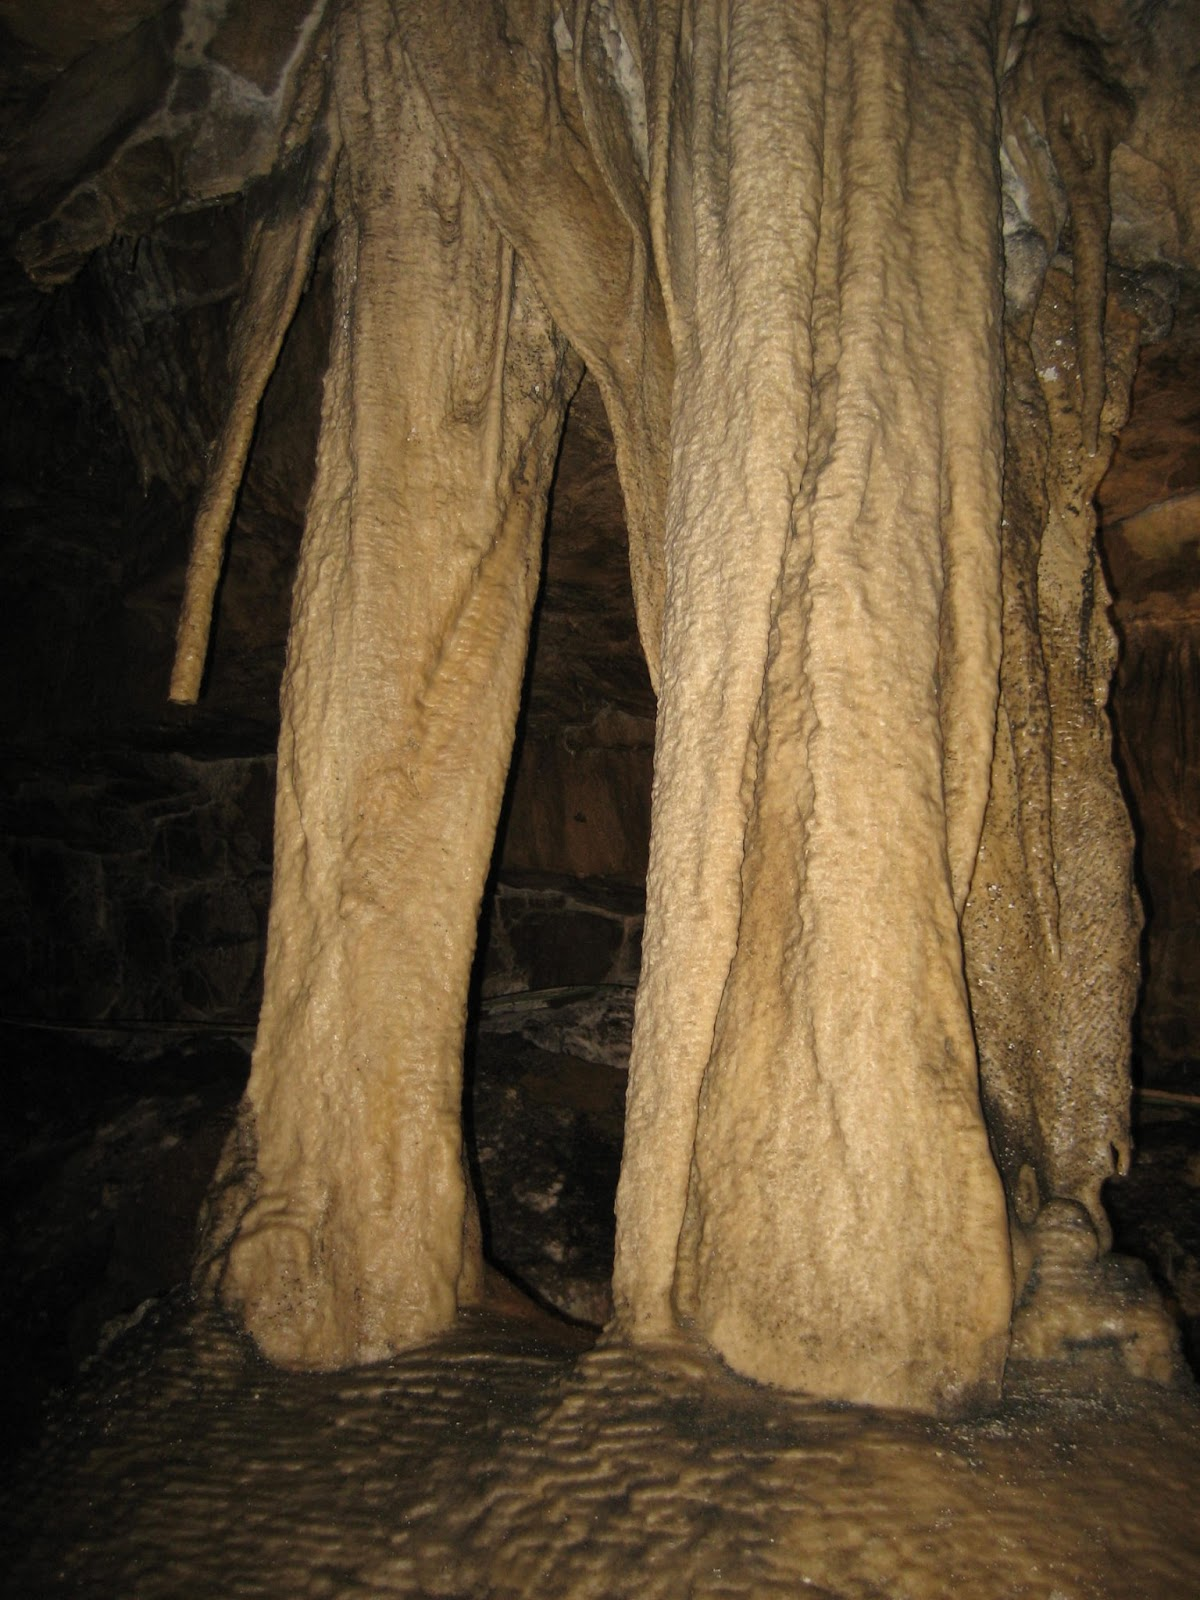 The Elephant's Legs, Ingleborough Cave. Stephen Oldfield